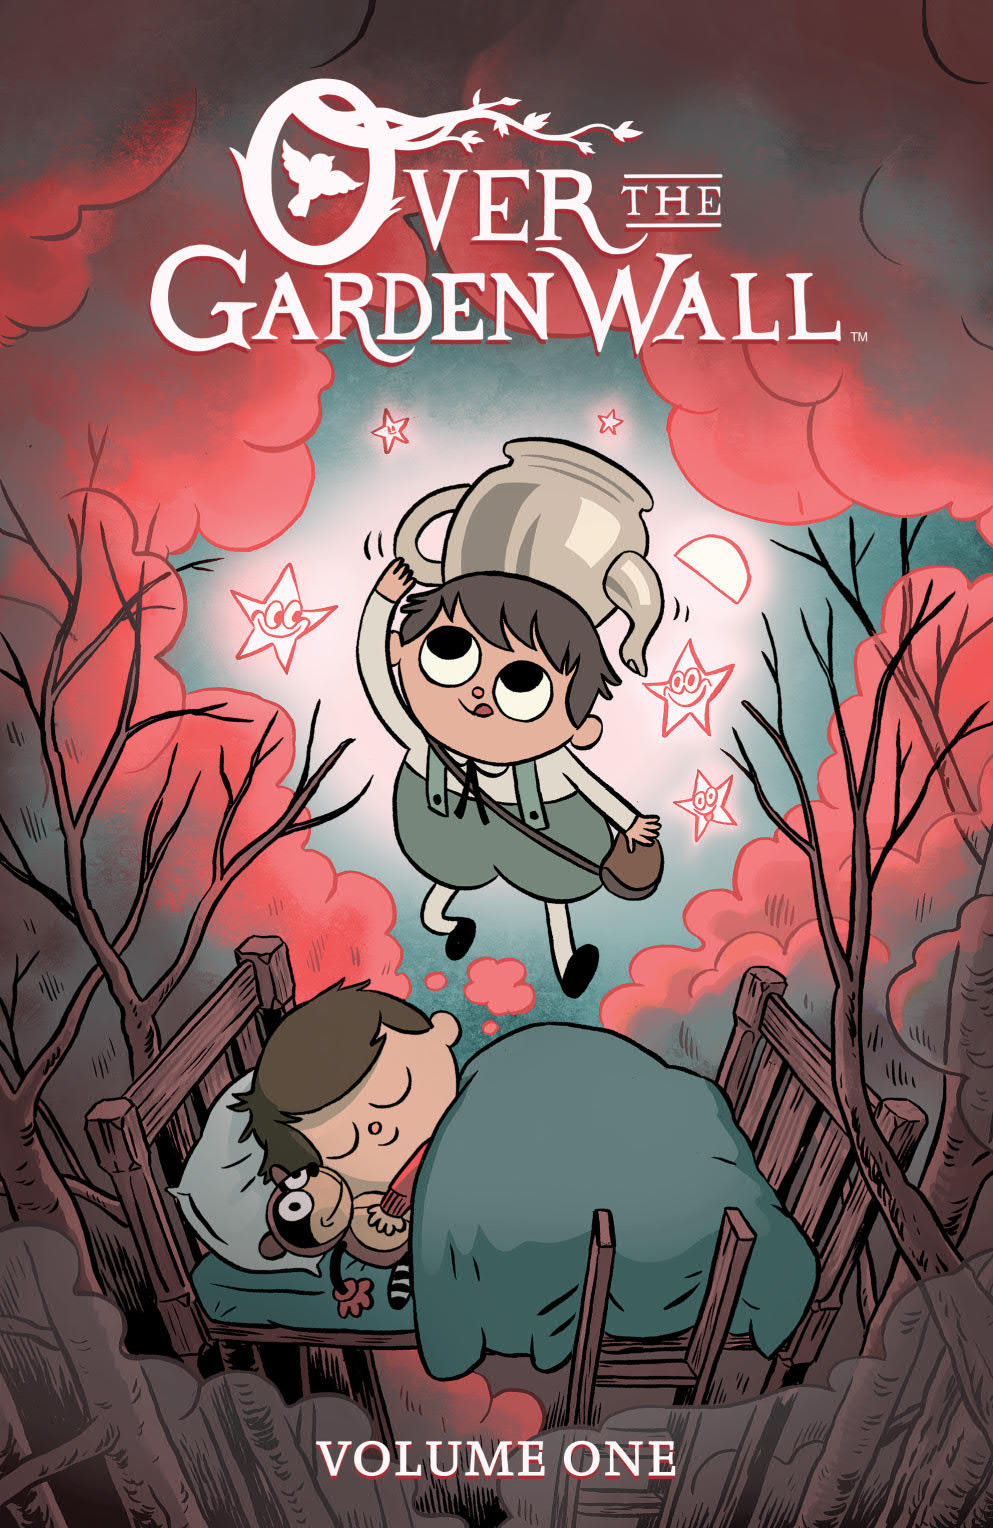 OverGardenWall_Ongoing_v1_PRESS_1 ComicList Preview: OVER THE GARDEN WALL VOLUME 1 TP